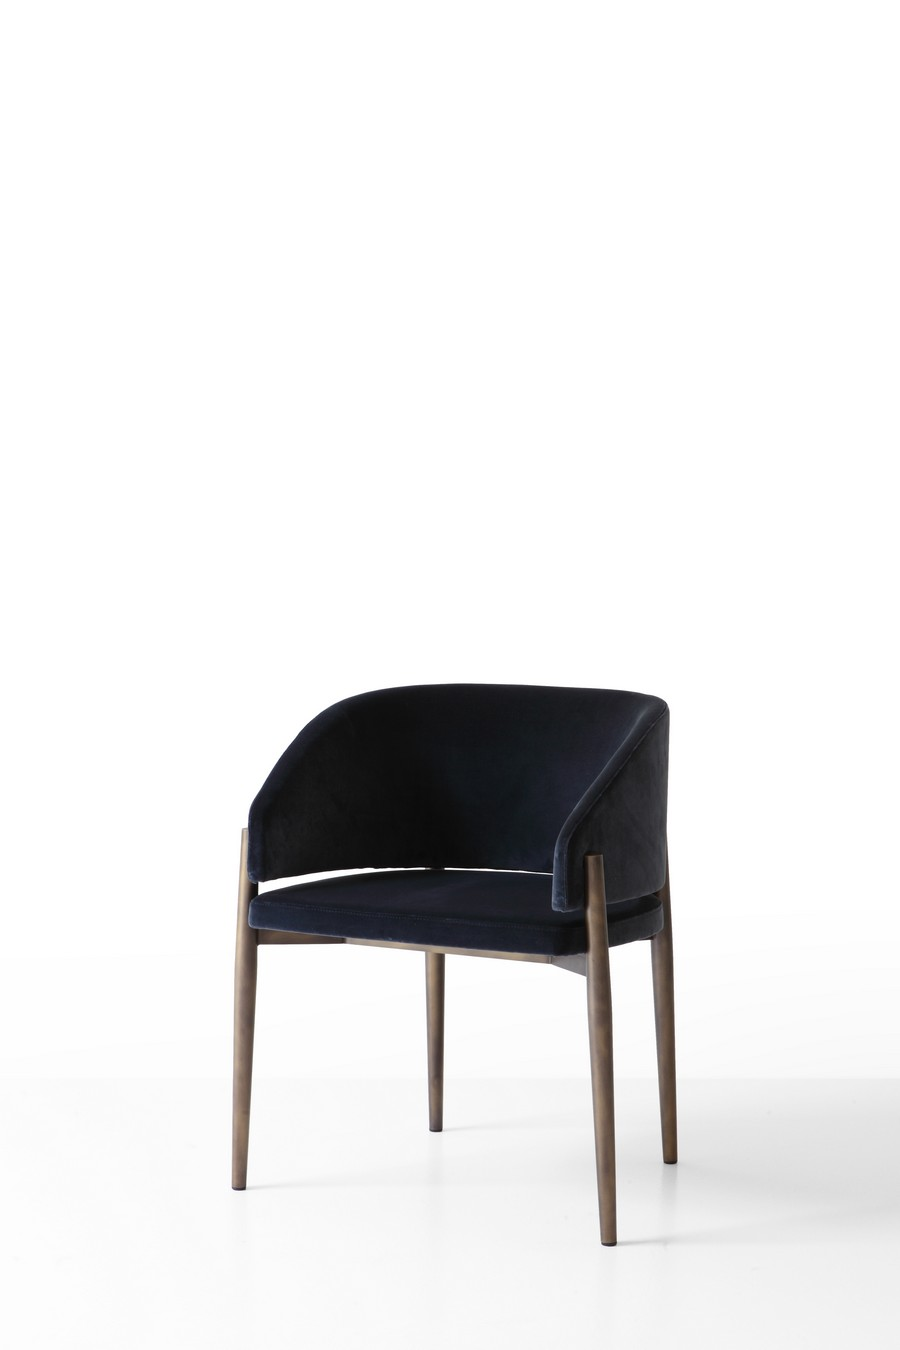 porro Check out these furniture novelties by Porro and Piero Lissoni FRANK 05